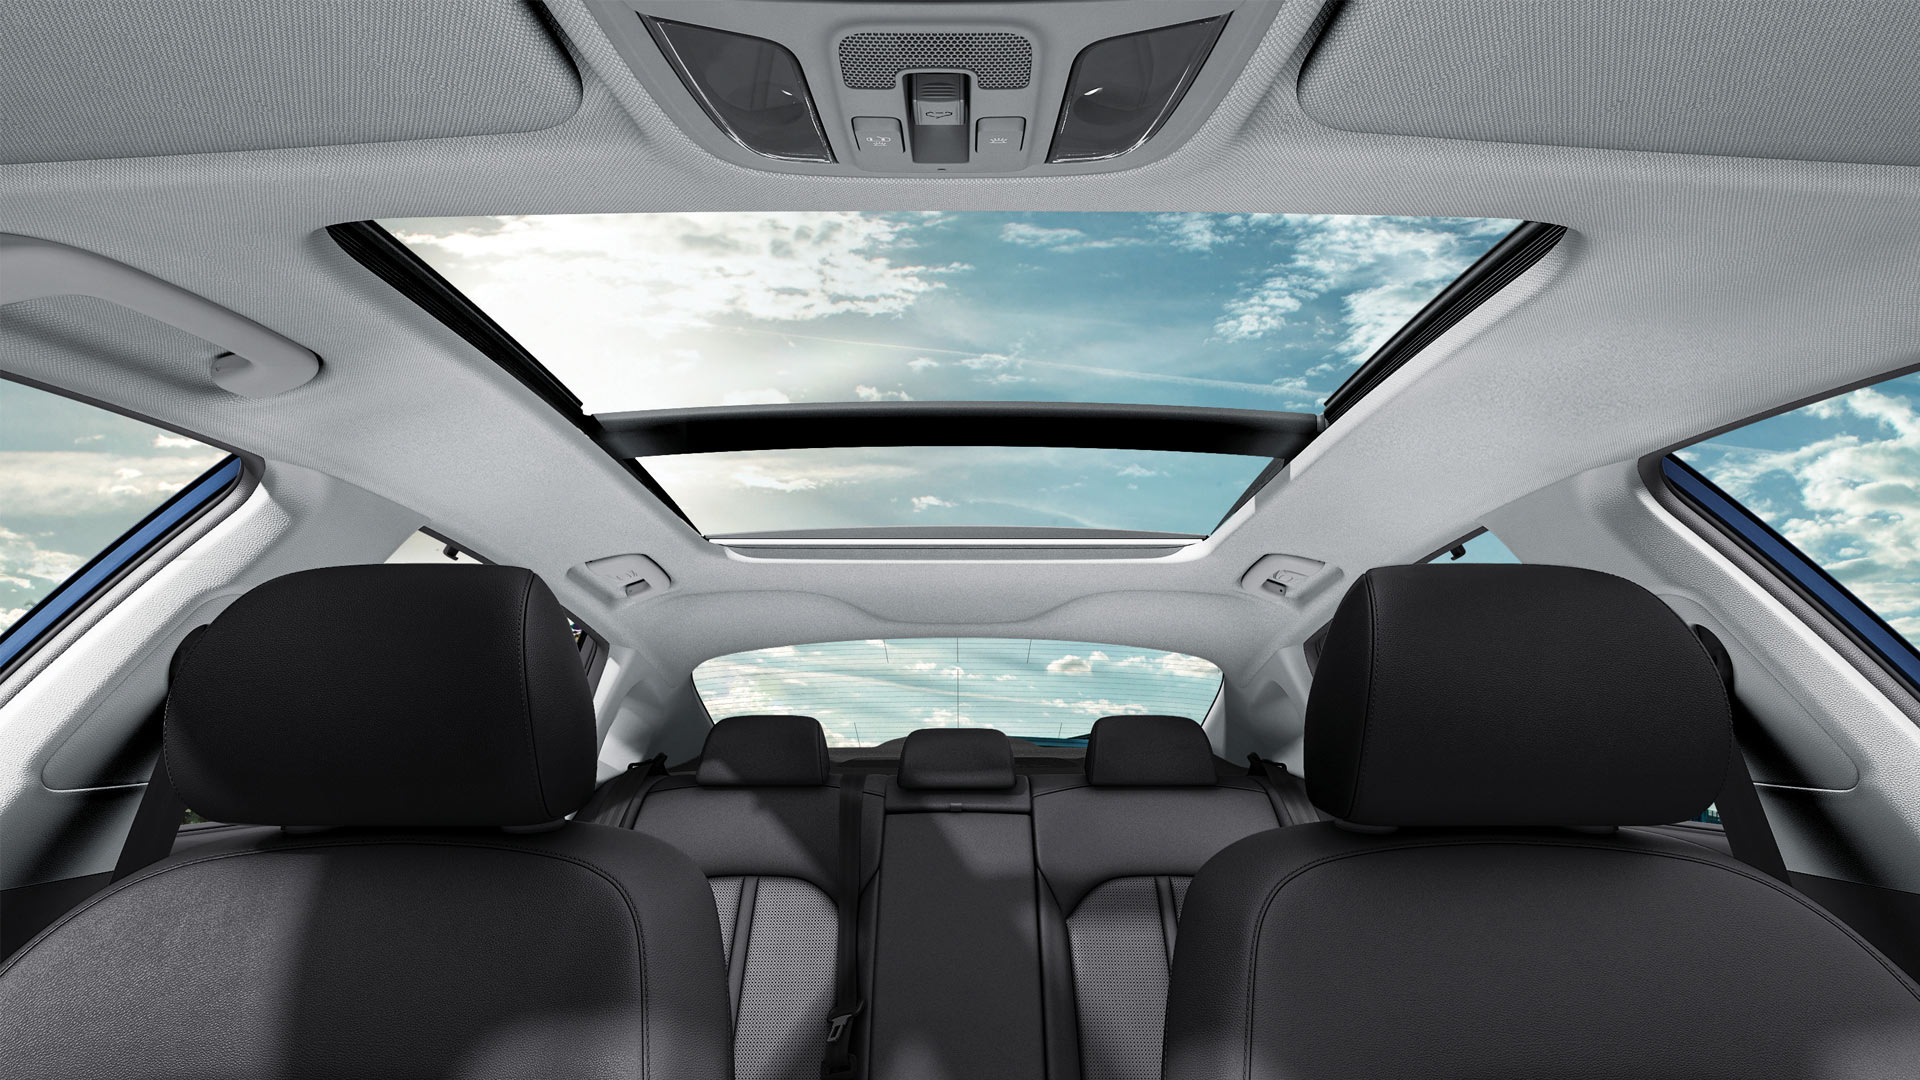 Jf_exm1_panoramic_sunroof_1920x1080